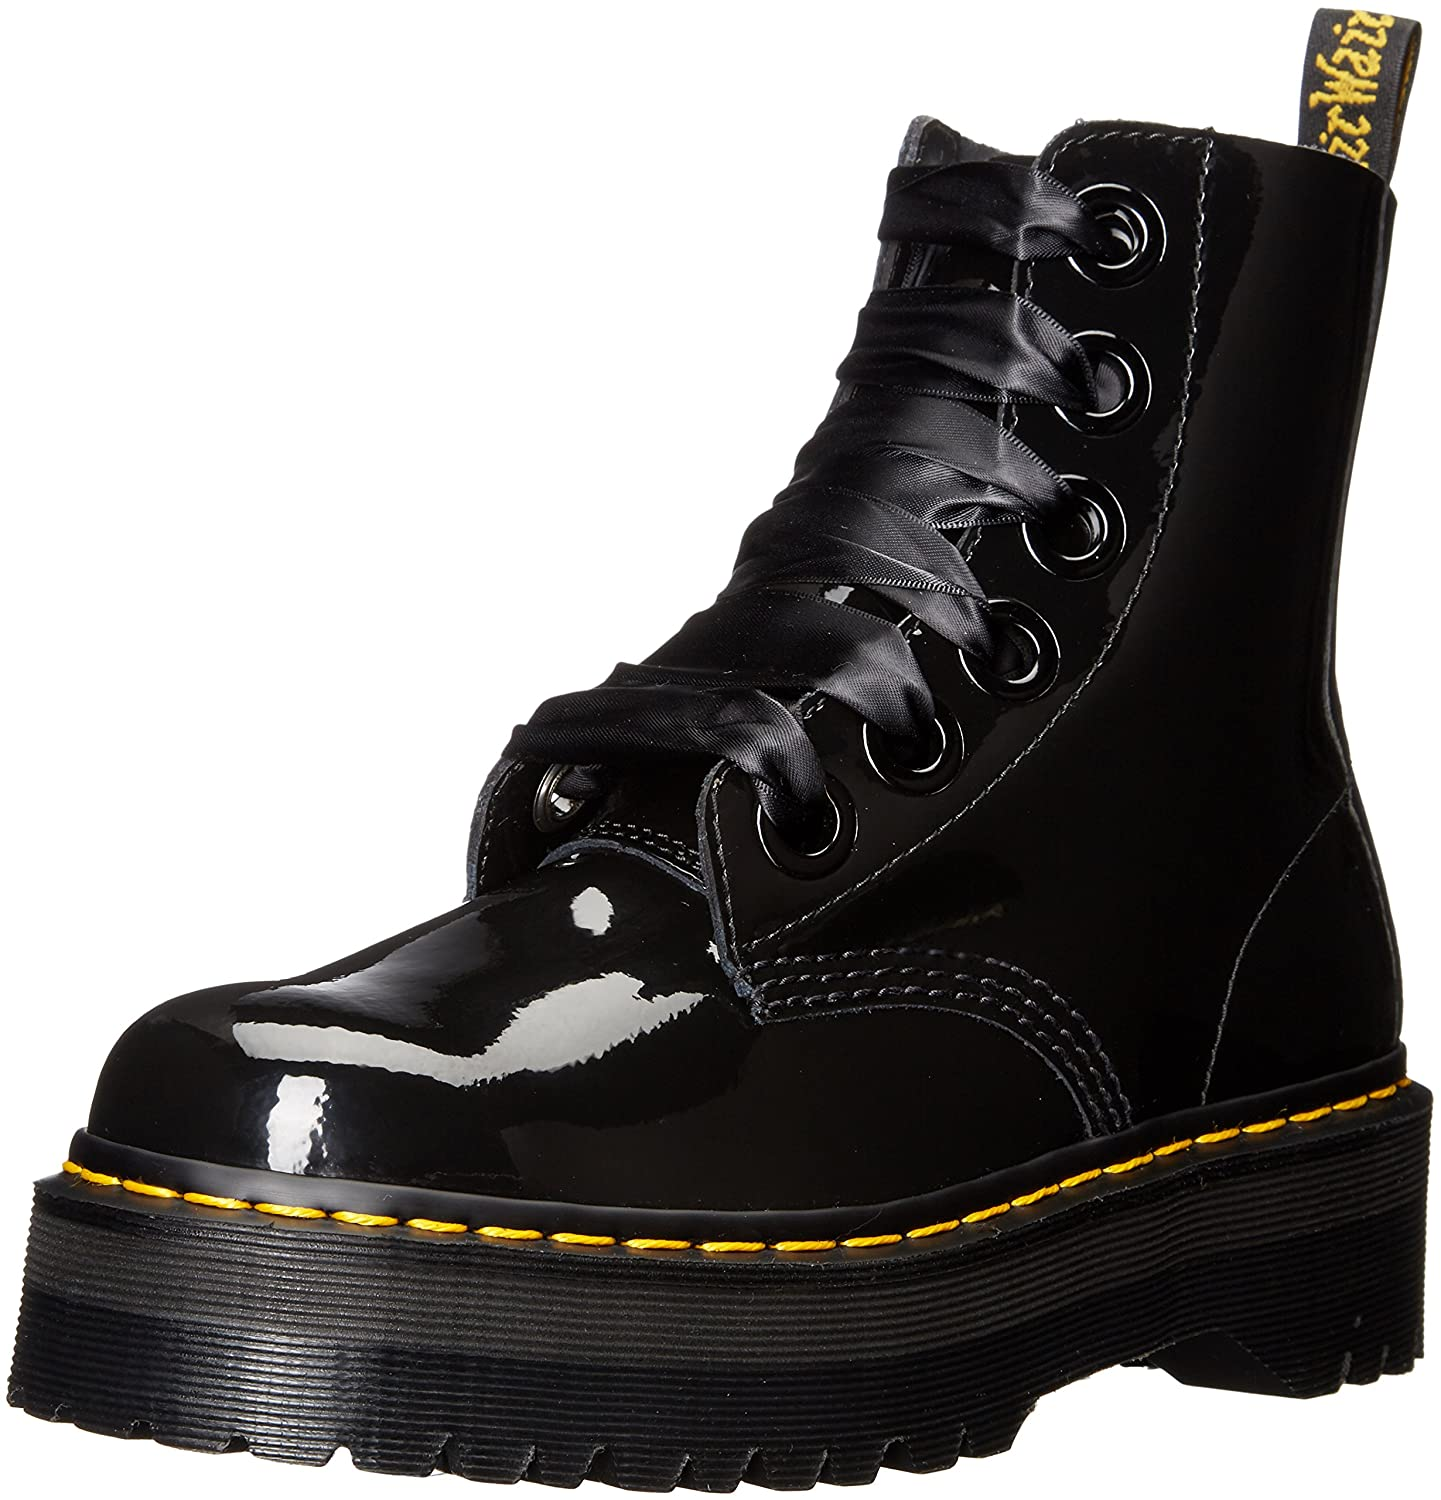 Dr. Martens Women's Molly Combat Boot B01AOACVRA 6 UK/8 M US|Black